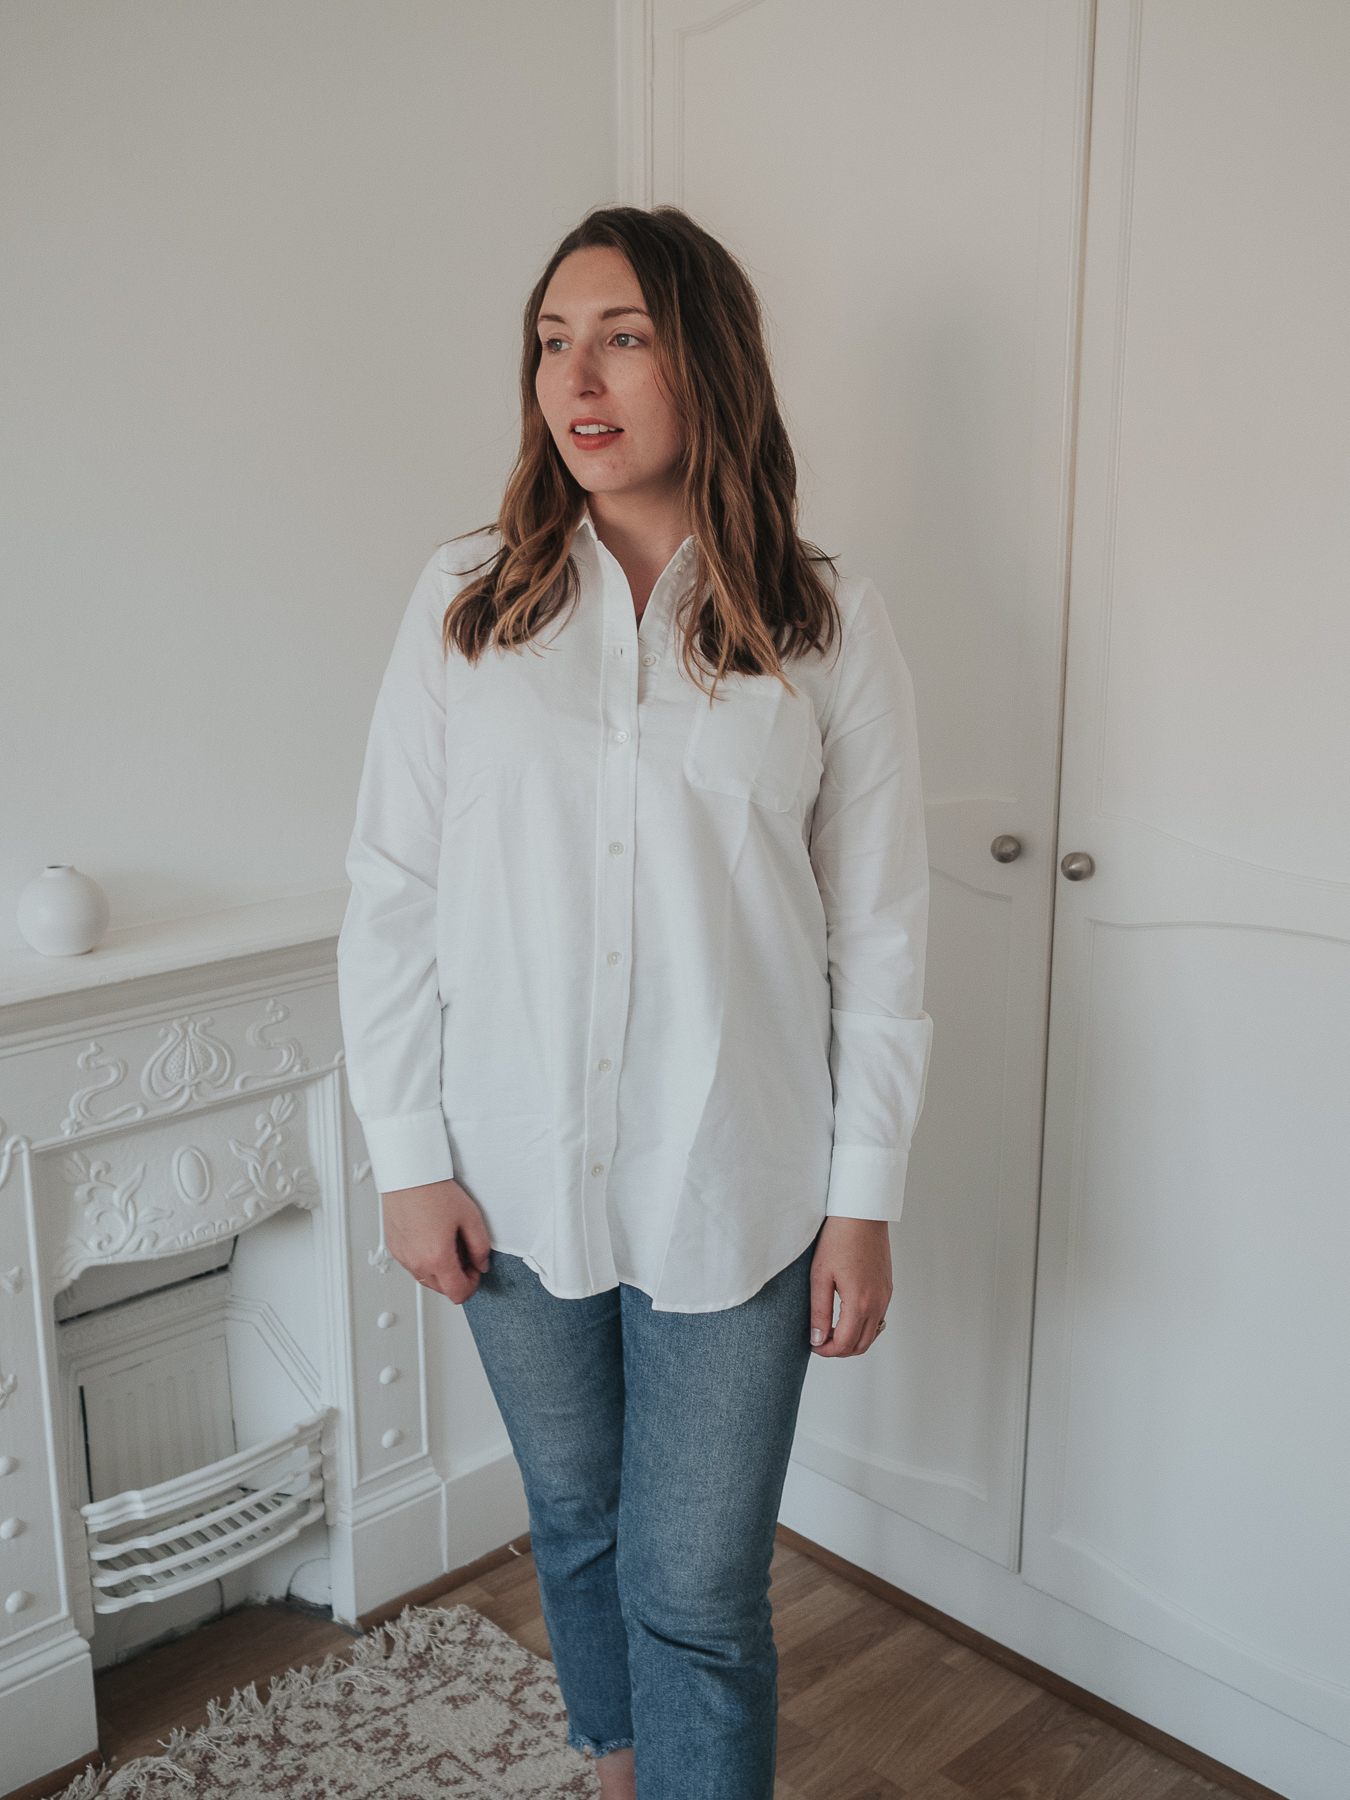 An honest review of Sezane | Tomboy Mommy white button-up shirt, maternity style | W&S